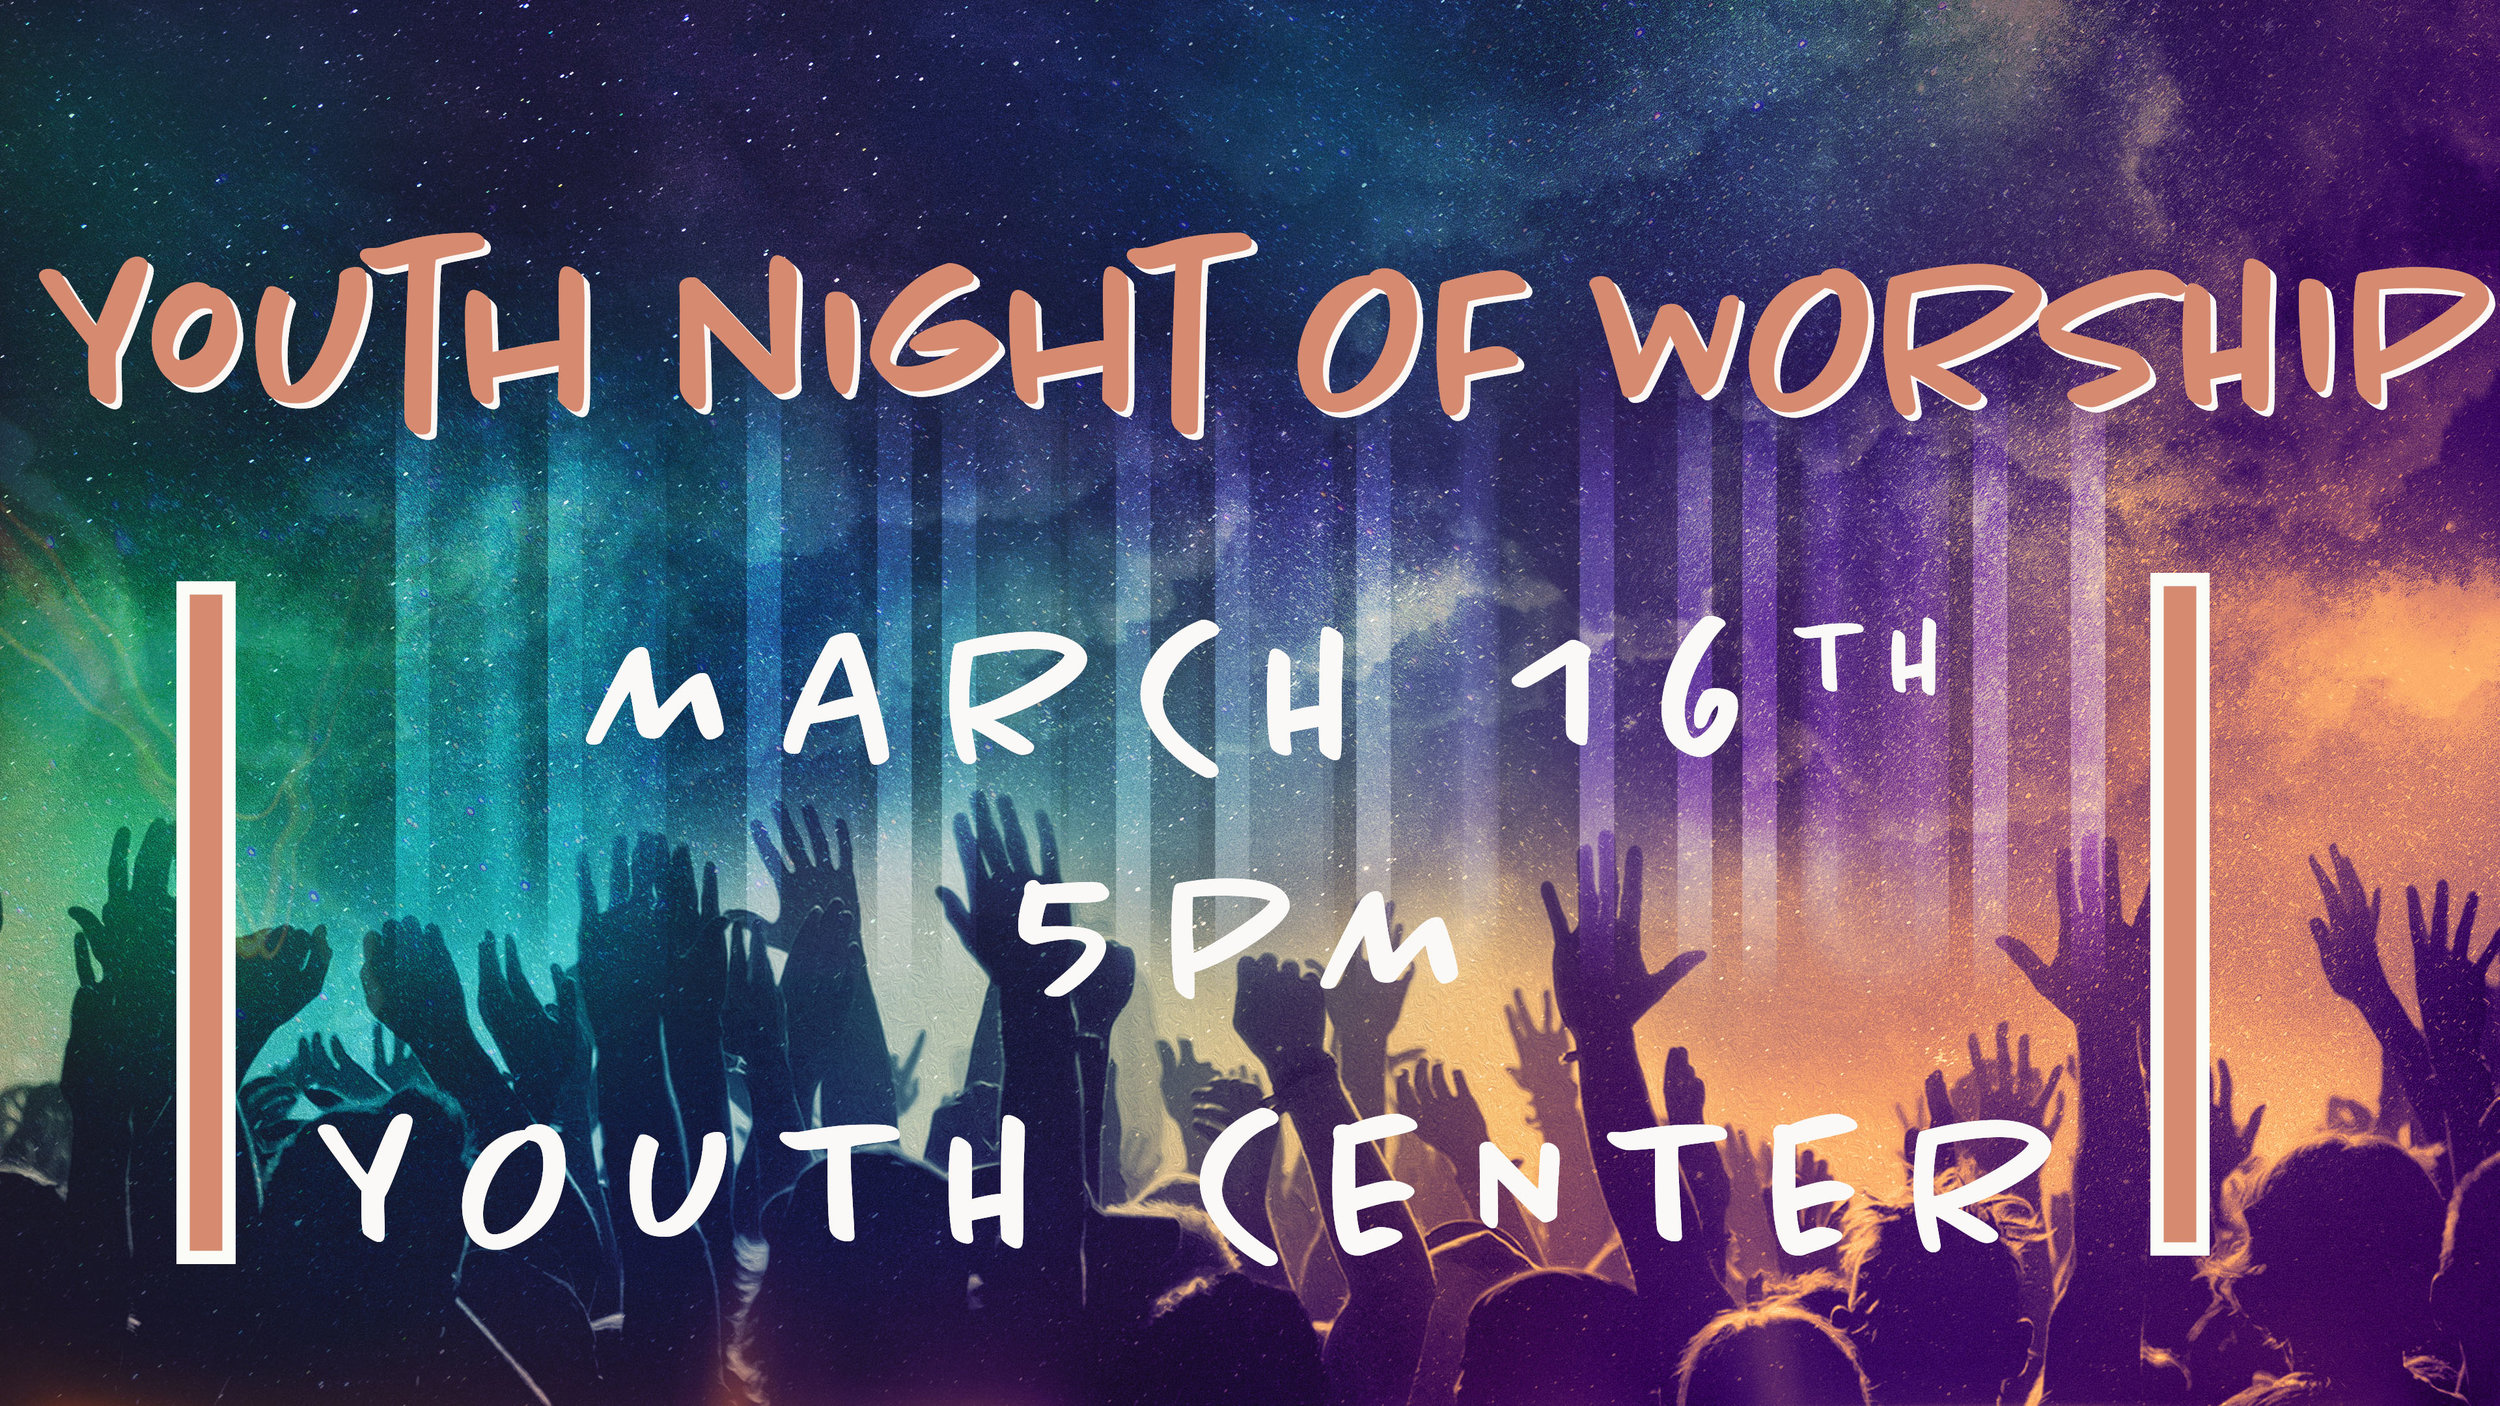 youth night of worship.jpg